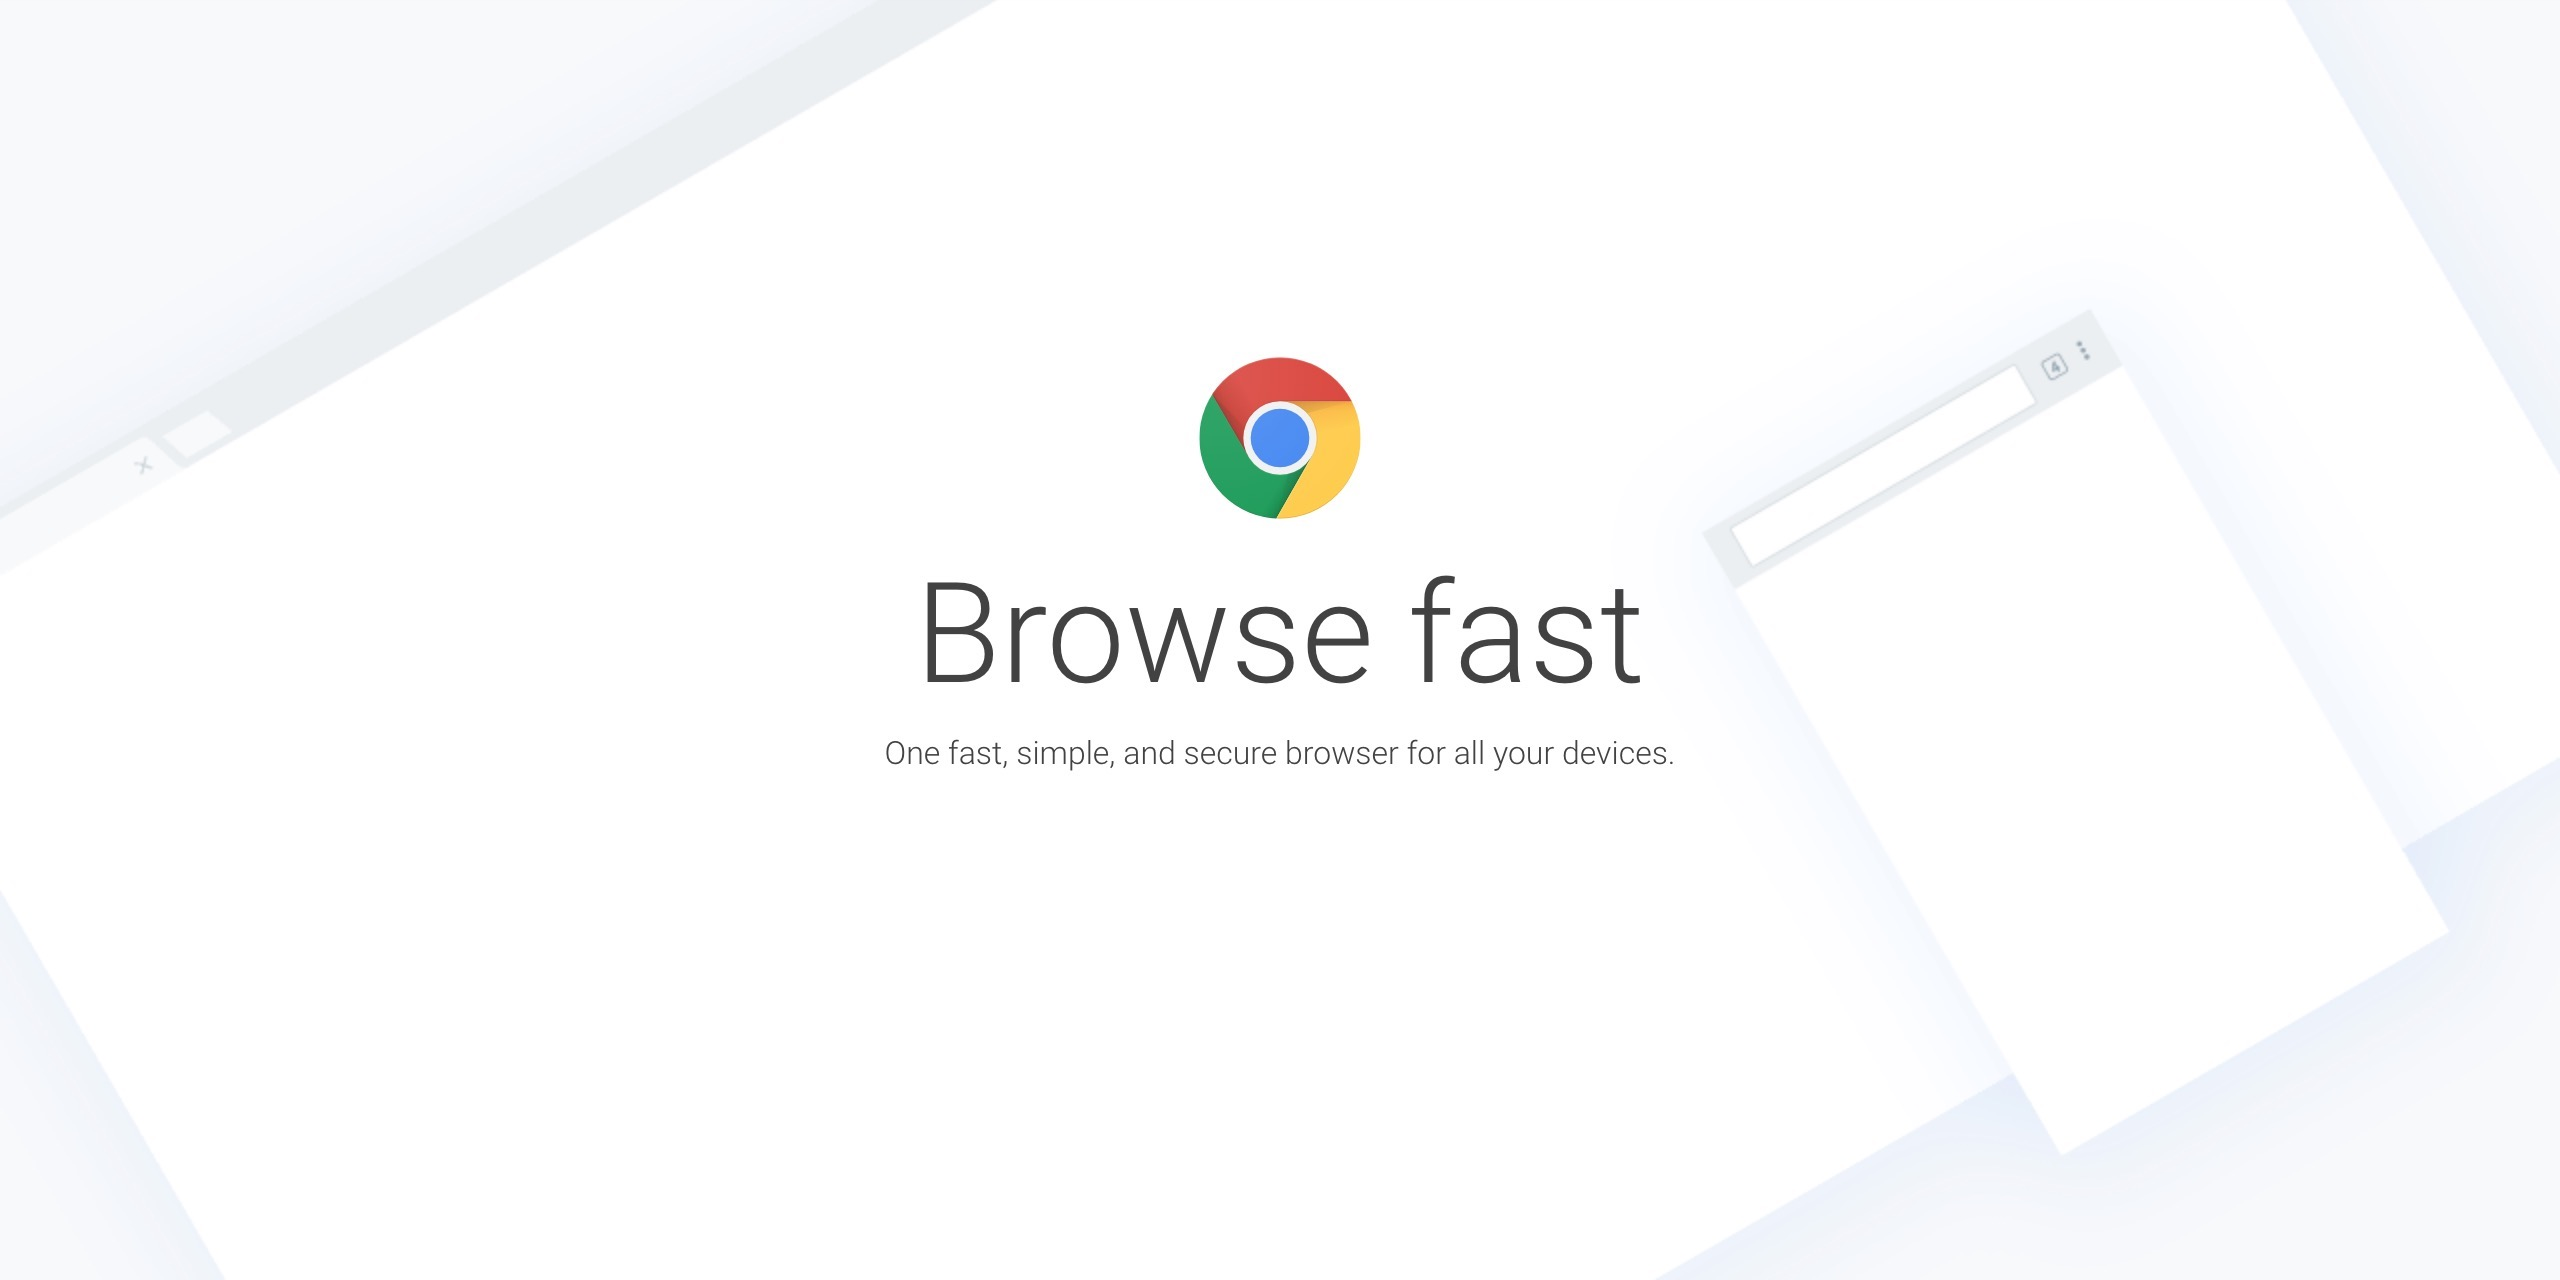 google again delaying chrome autoplay policies that impact games web apps